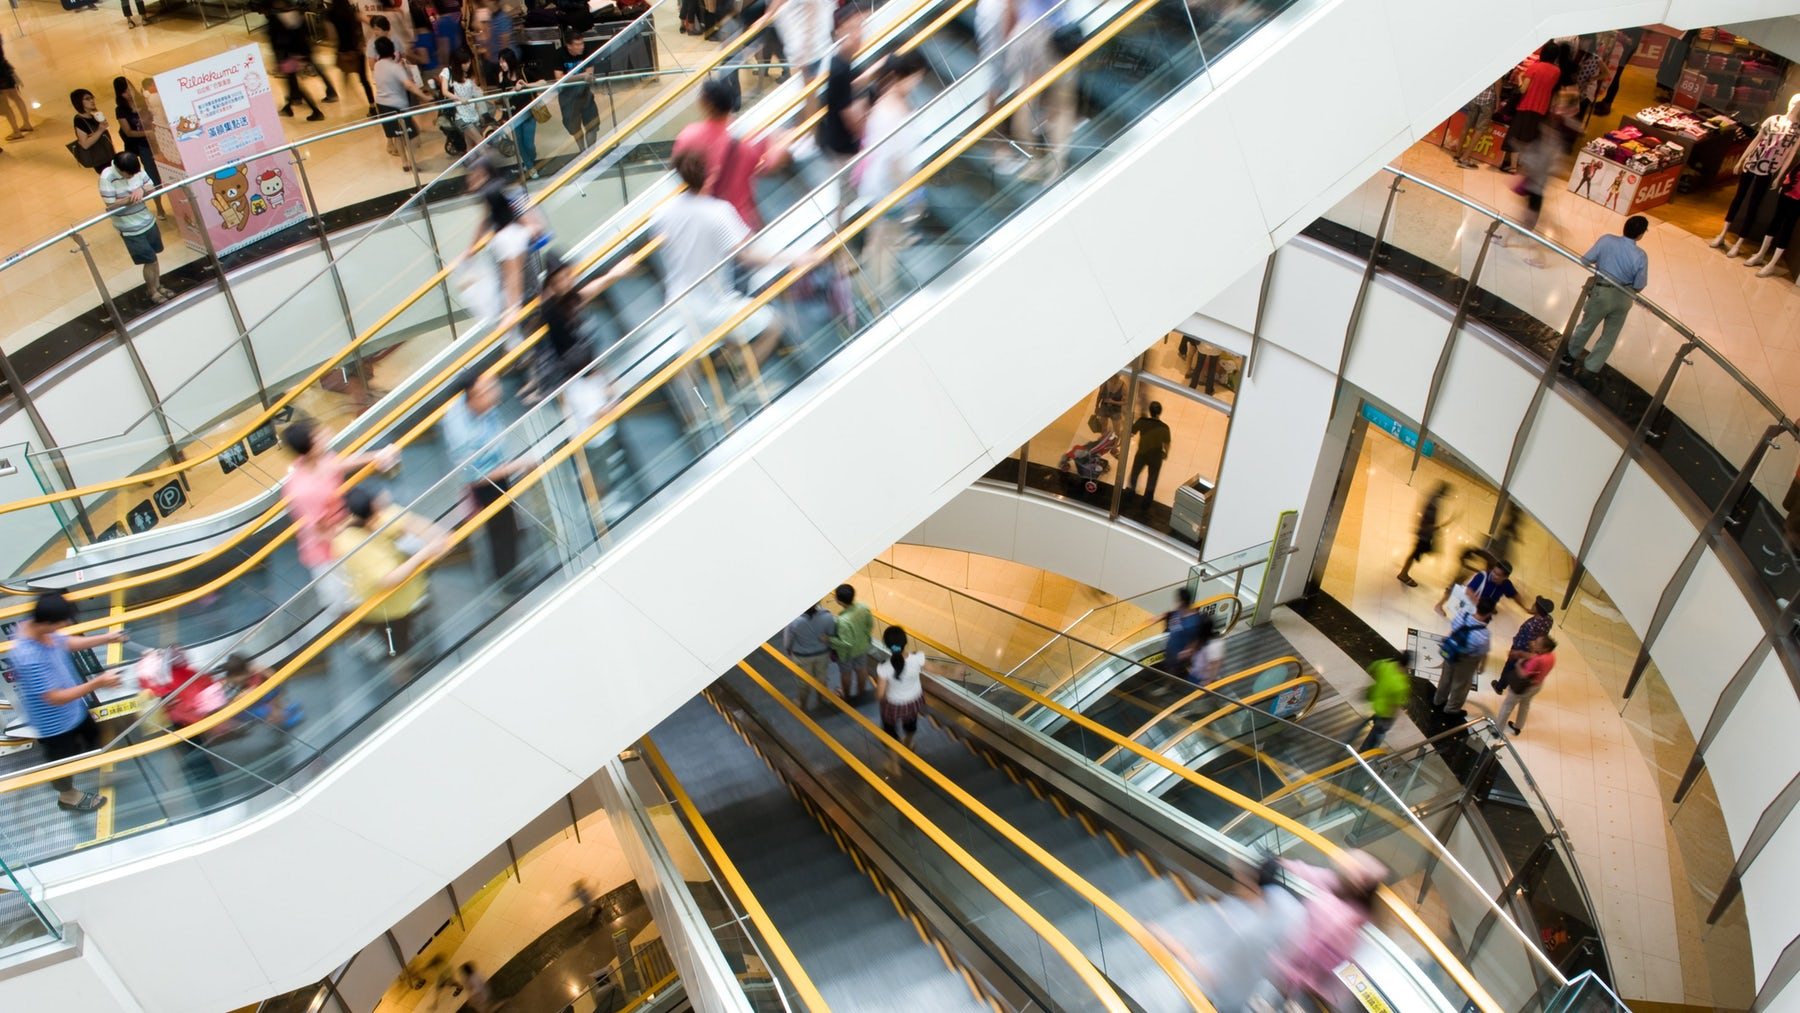 Crowds at a shopping mall | Source: Shutterstock